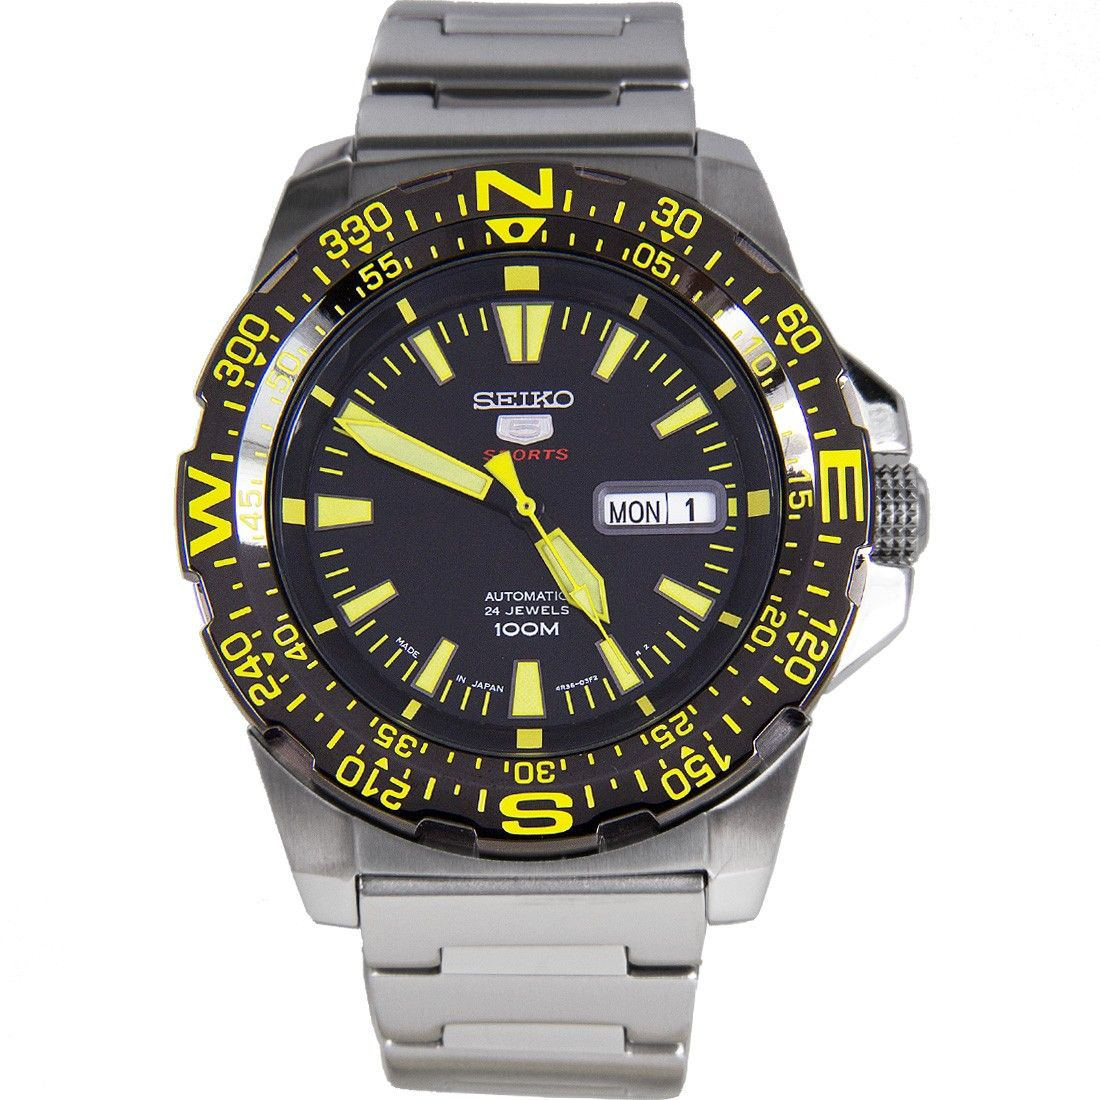 Seiko 5 Automatic Stainless Steel Watch SRP545J1 SRP545